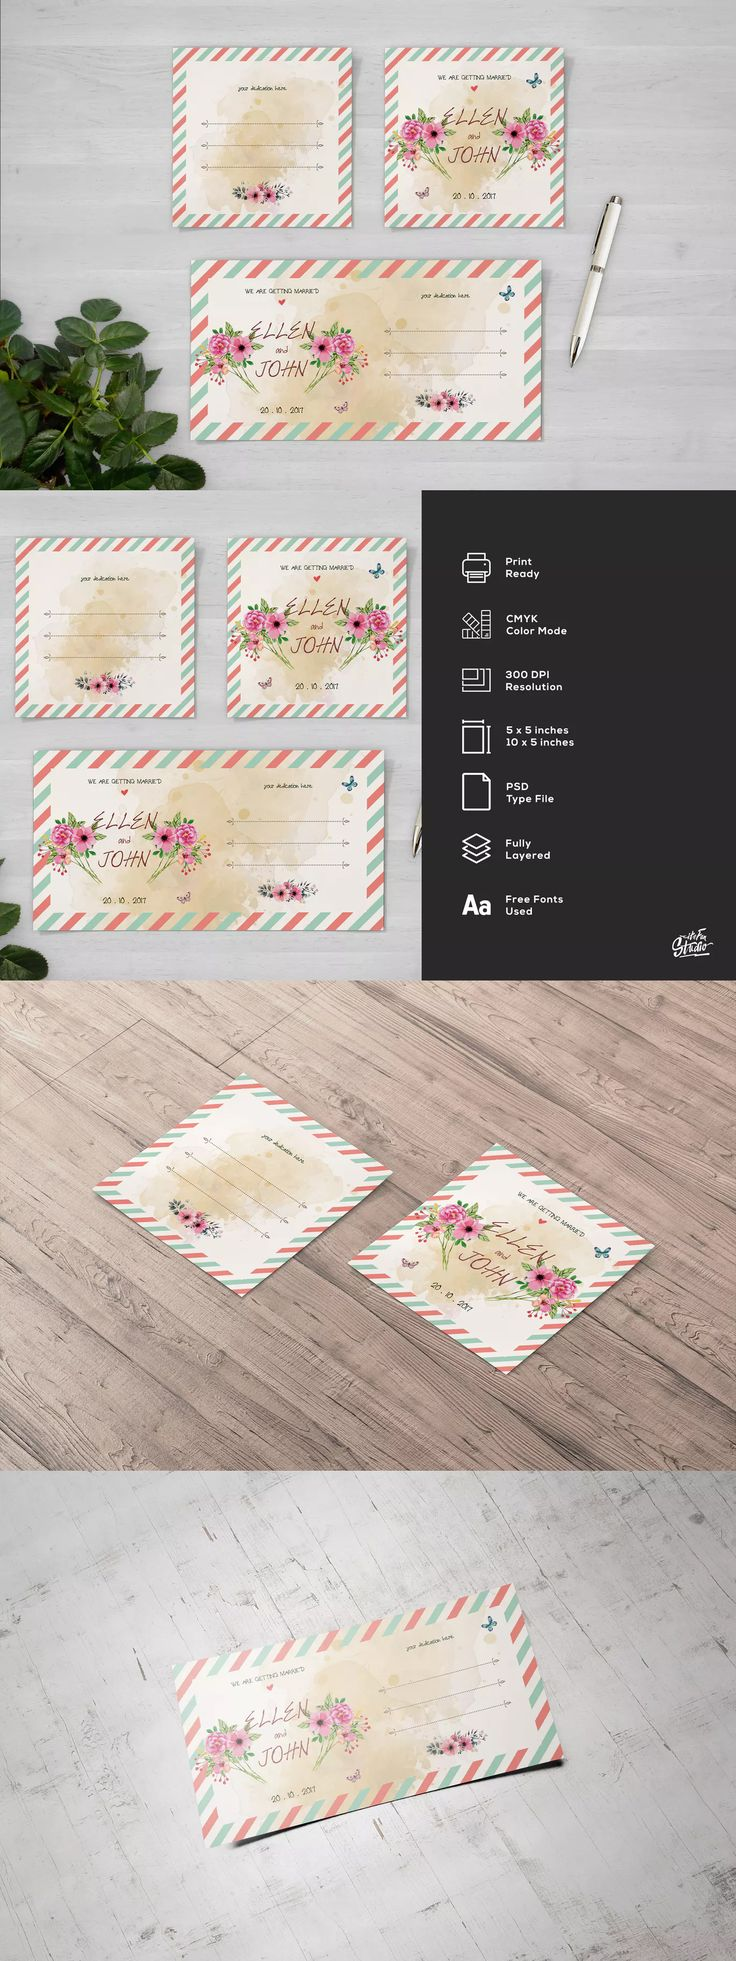 14 best Invitation Templates images on Pinterest | Card patterns ...